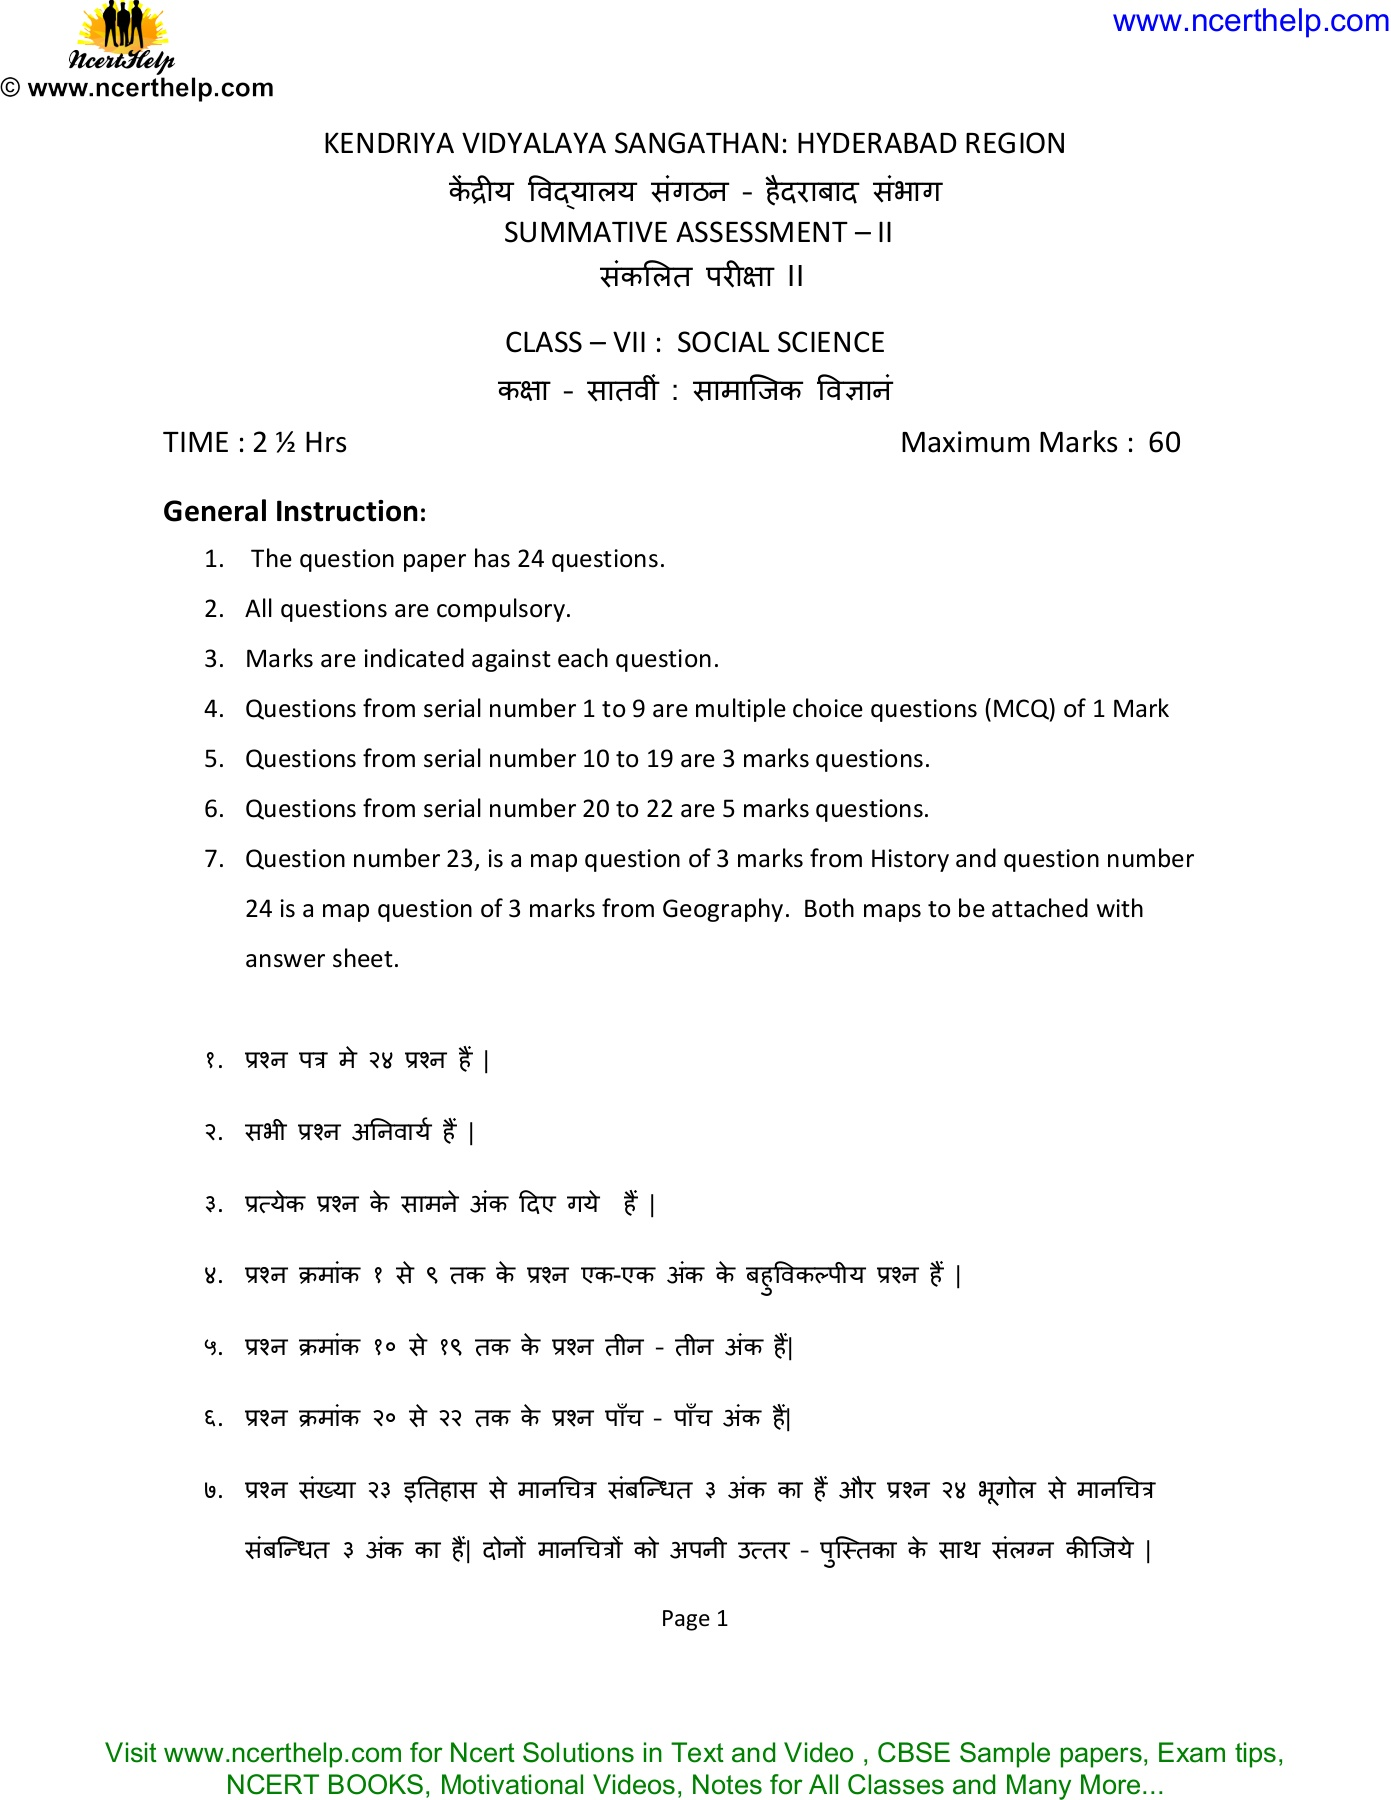 cbse sample paper for class 7 social science sa2